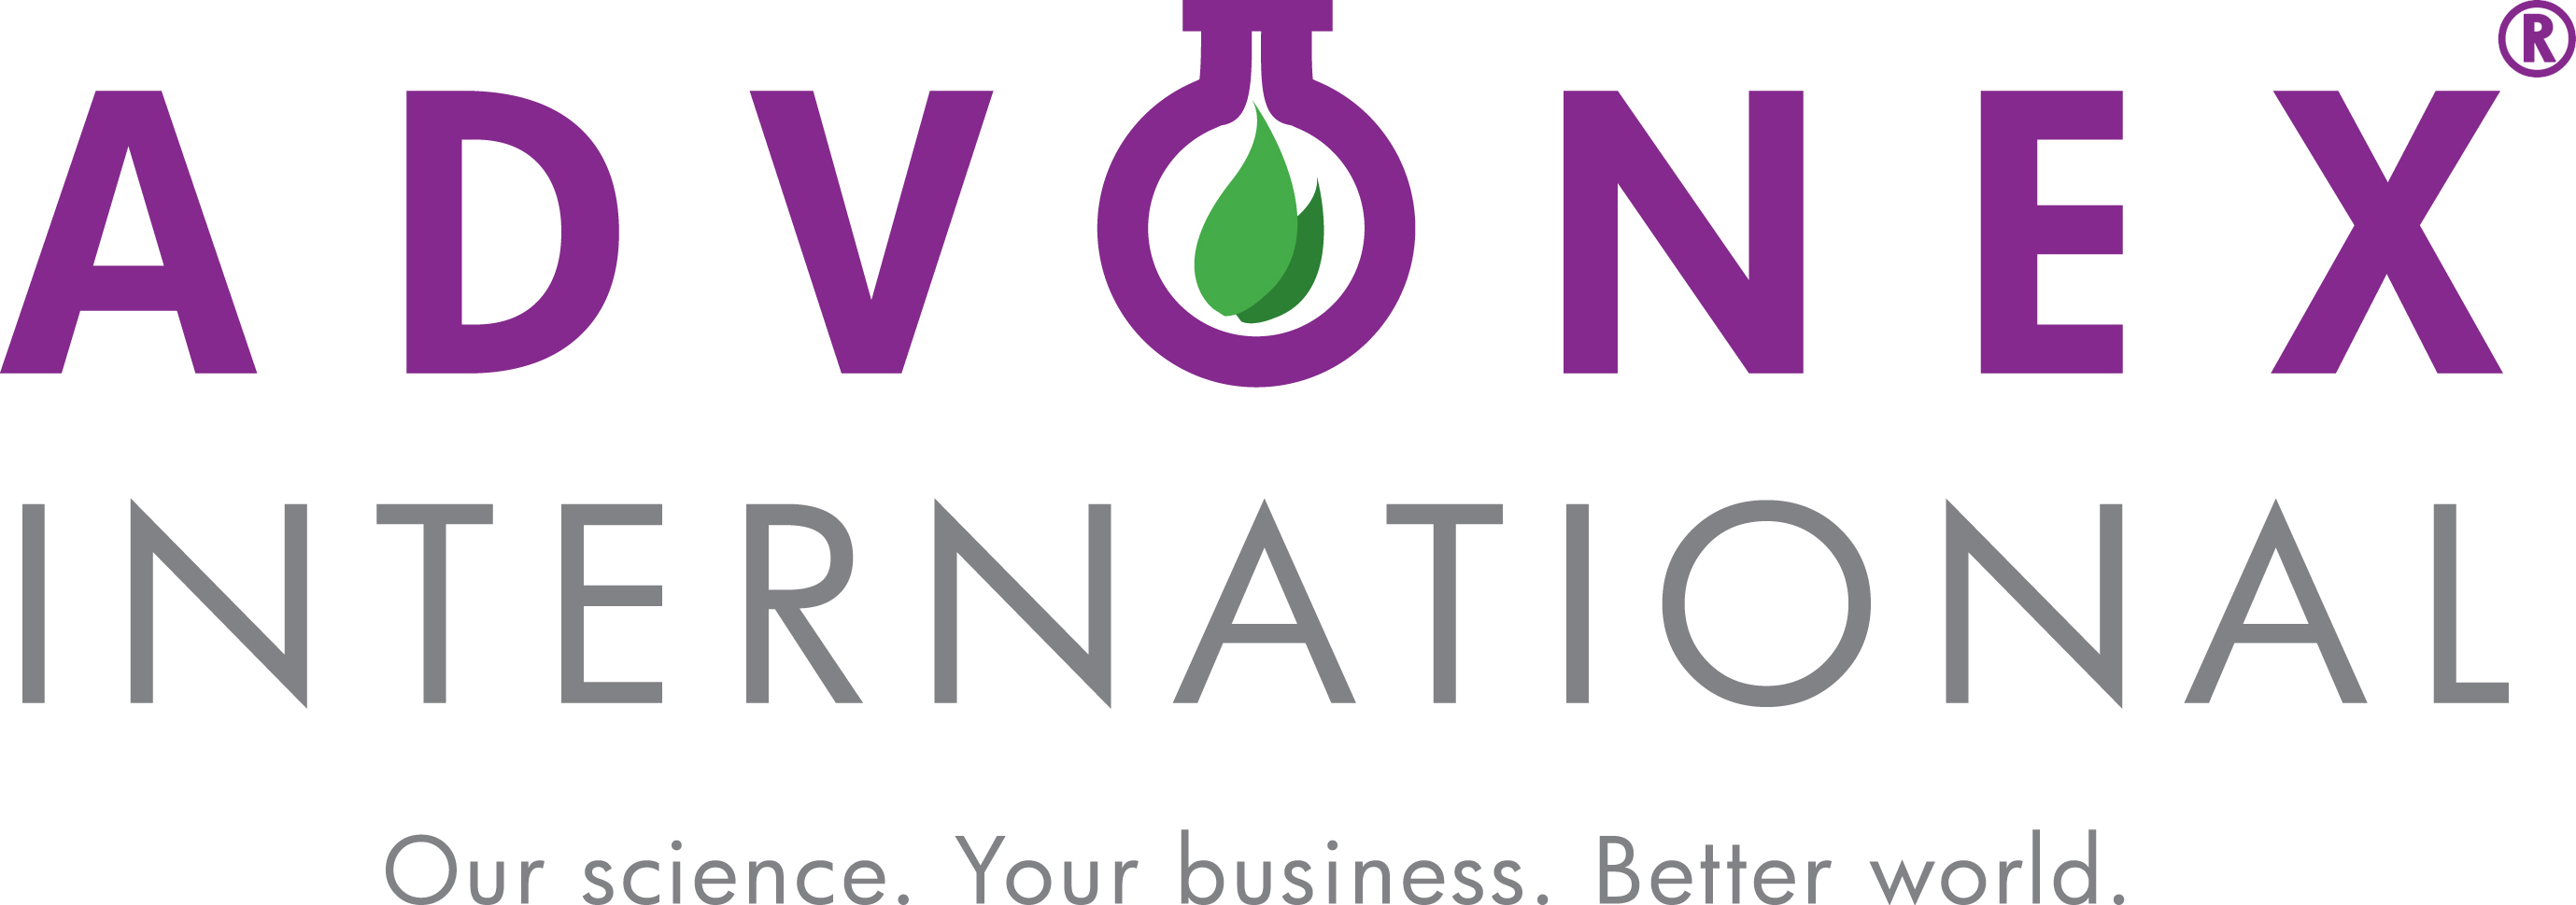 Advonex International